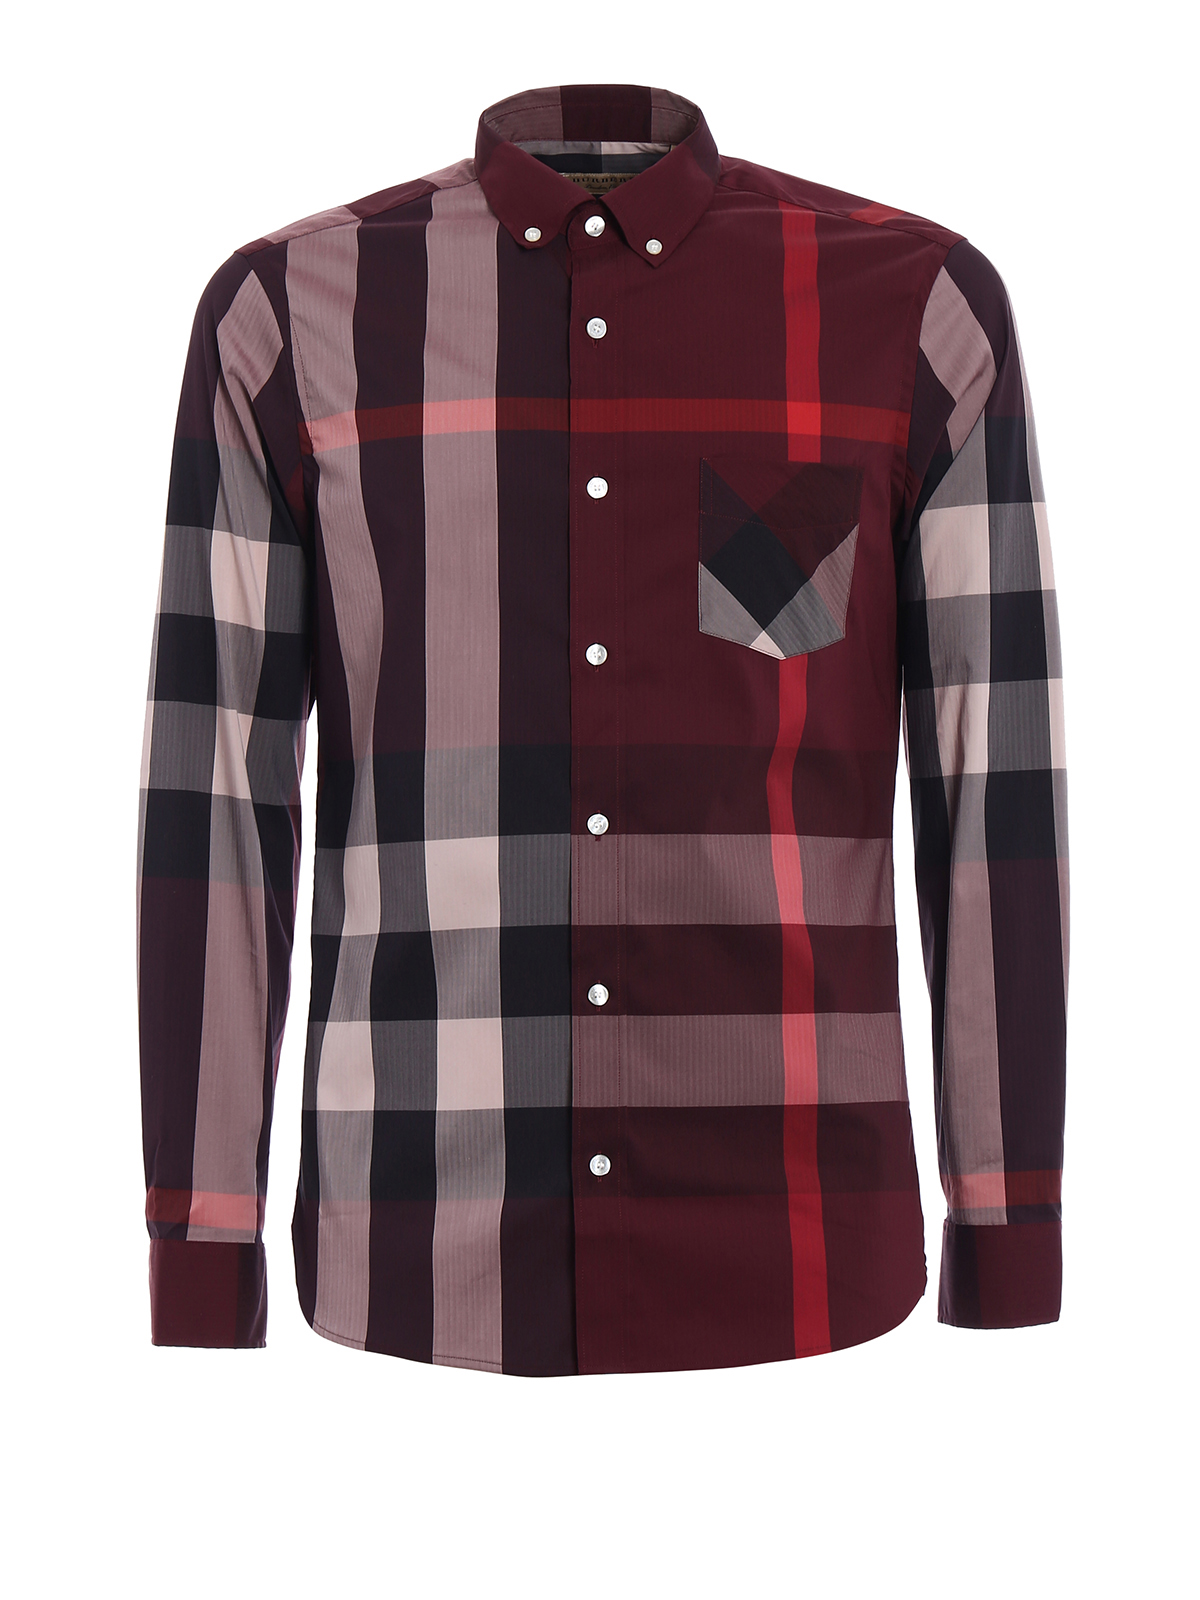 Thornaby check shirt by burberry shirts ikrix for Where are burberry shirts made